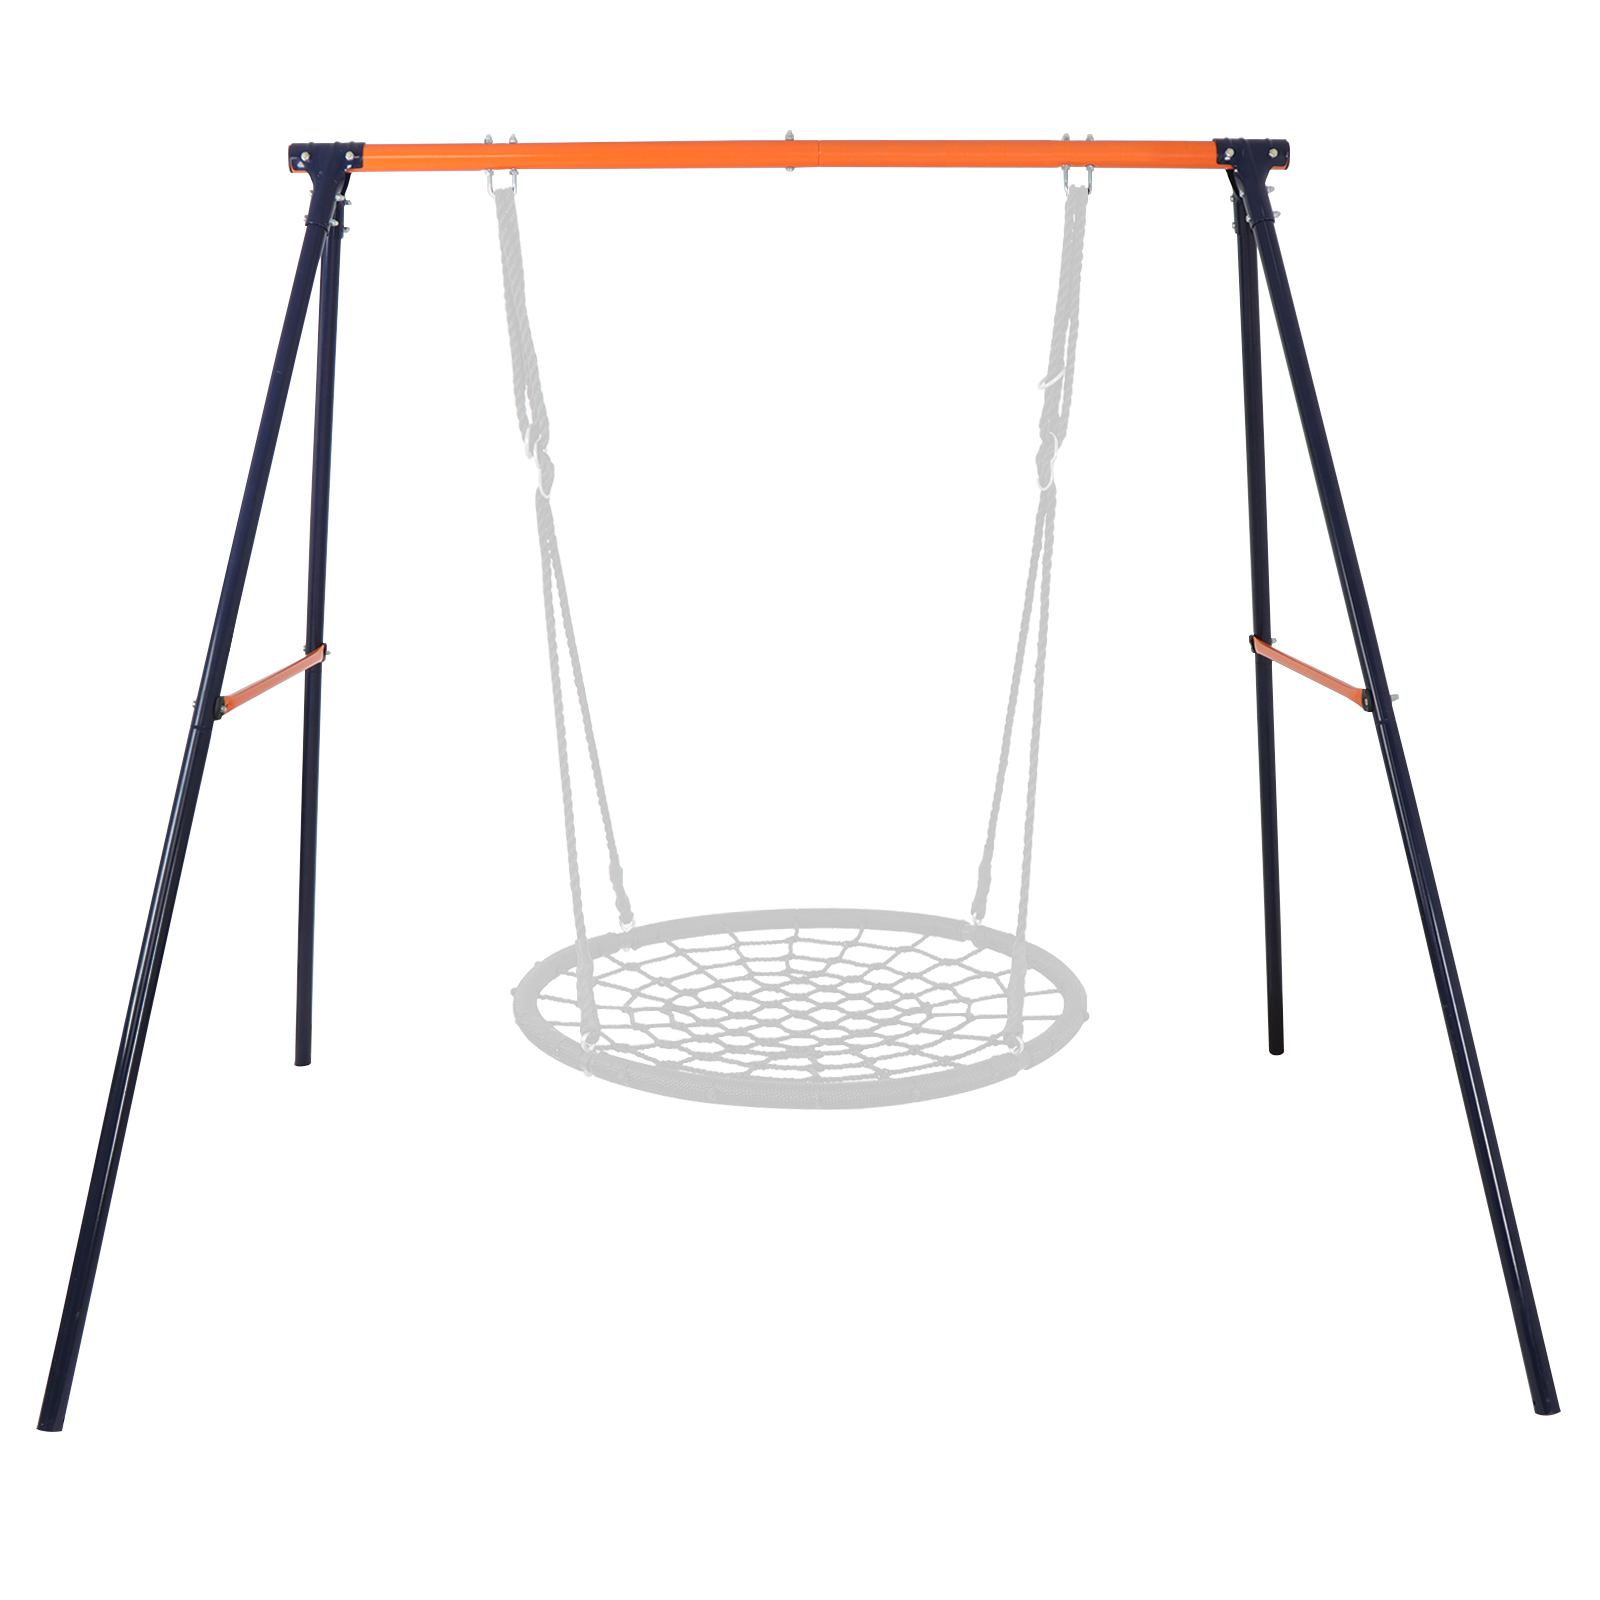 Zeny Web Tree Swing Frame -Comes Assembled with Durable and Adjustable Ropes - Installs in Seconds - 220 lb Weight Capacity - Non-Stop Fun